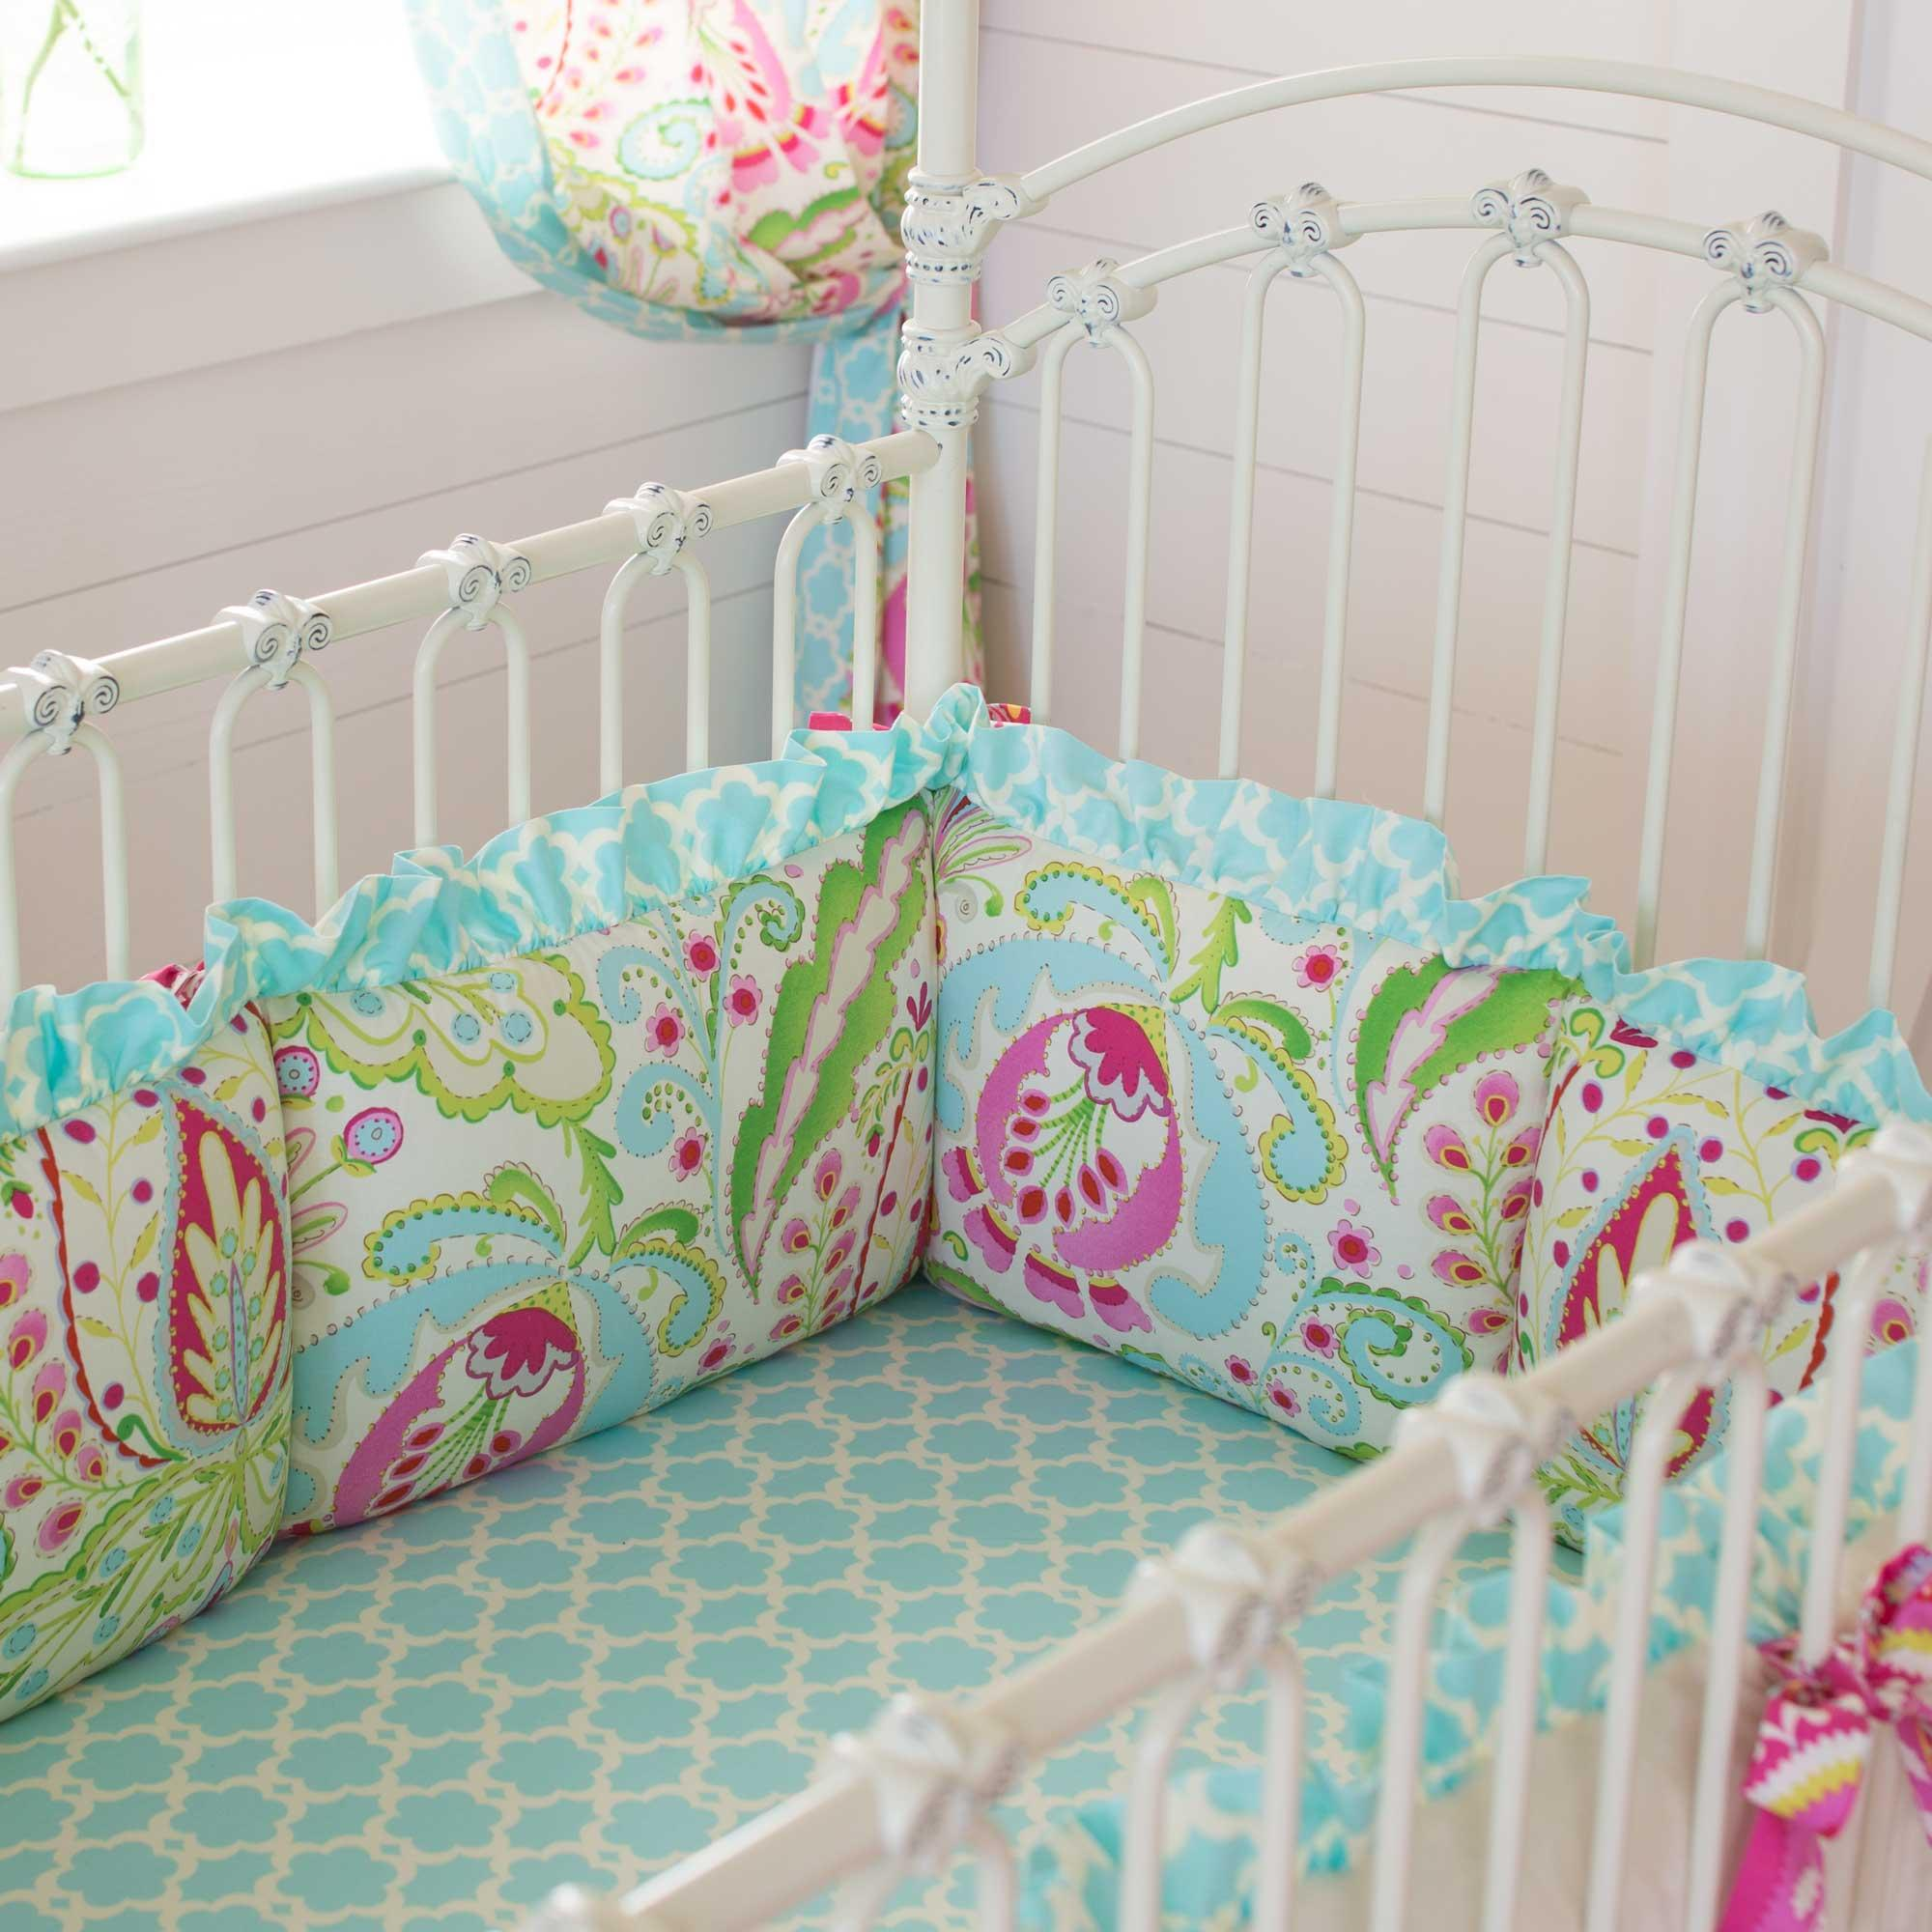 Crib Bumper Pads | Bumper Pads for Baby Cribs | Safe Crib Bumpers